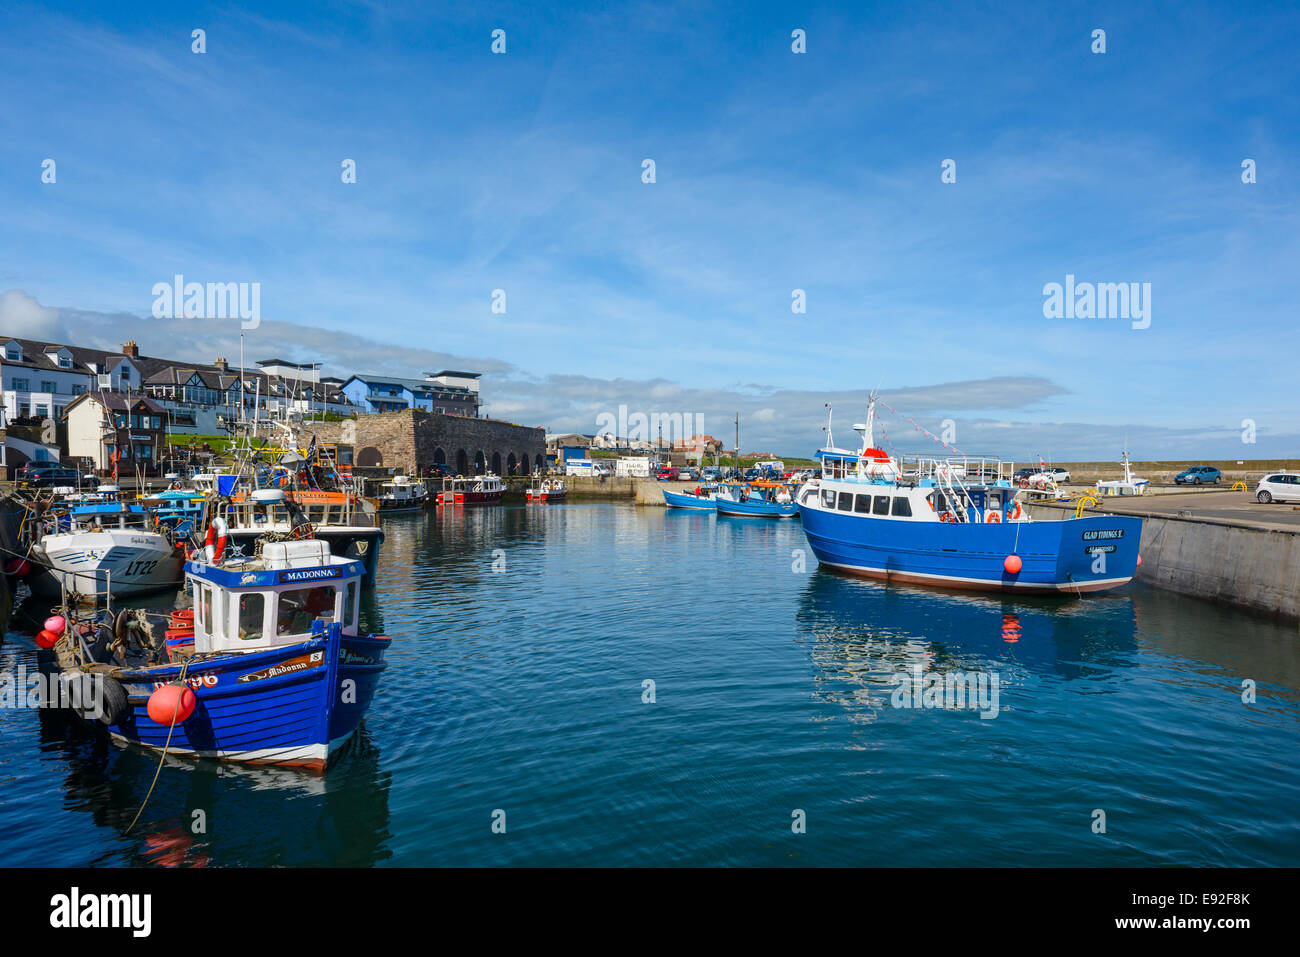 Seahouses Harbour Northumberland on a lovely clear day with a calm sea and boats moored to the piers jetties. - Stock Image